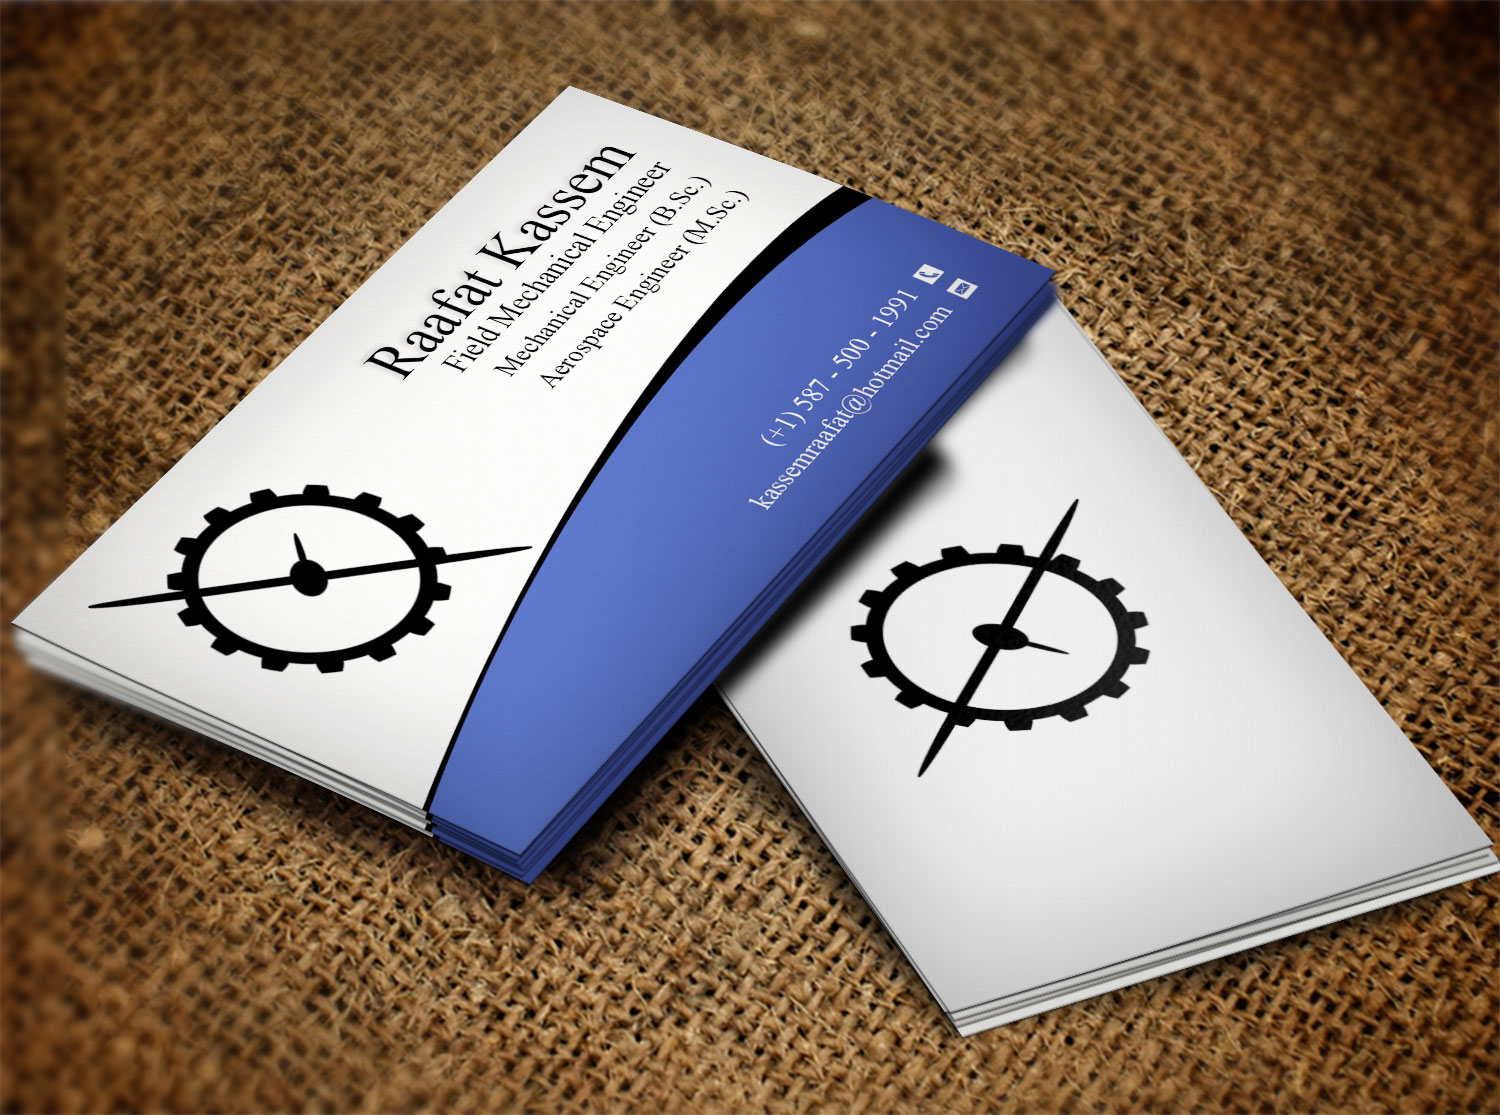 Business card samples for engineers images card design and card business card samples for engineers choice image card design and business card design engineer gallery card flashek Choice Image